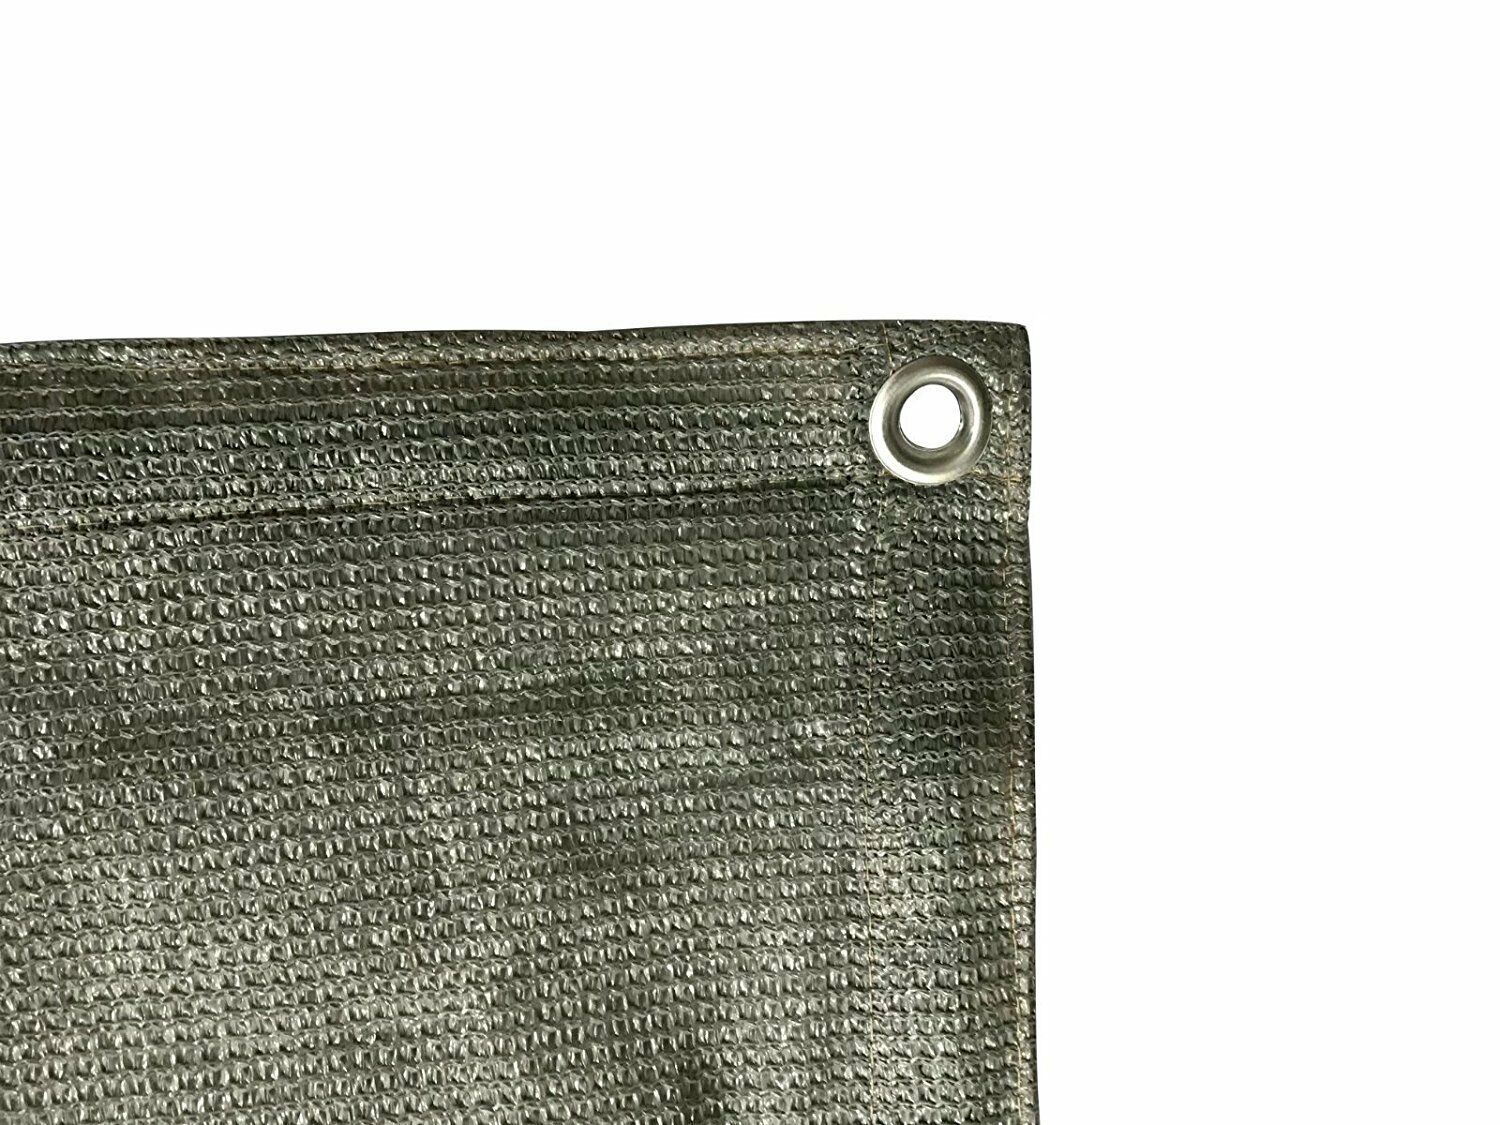 90 percent sun shade cloth with grommets